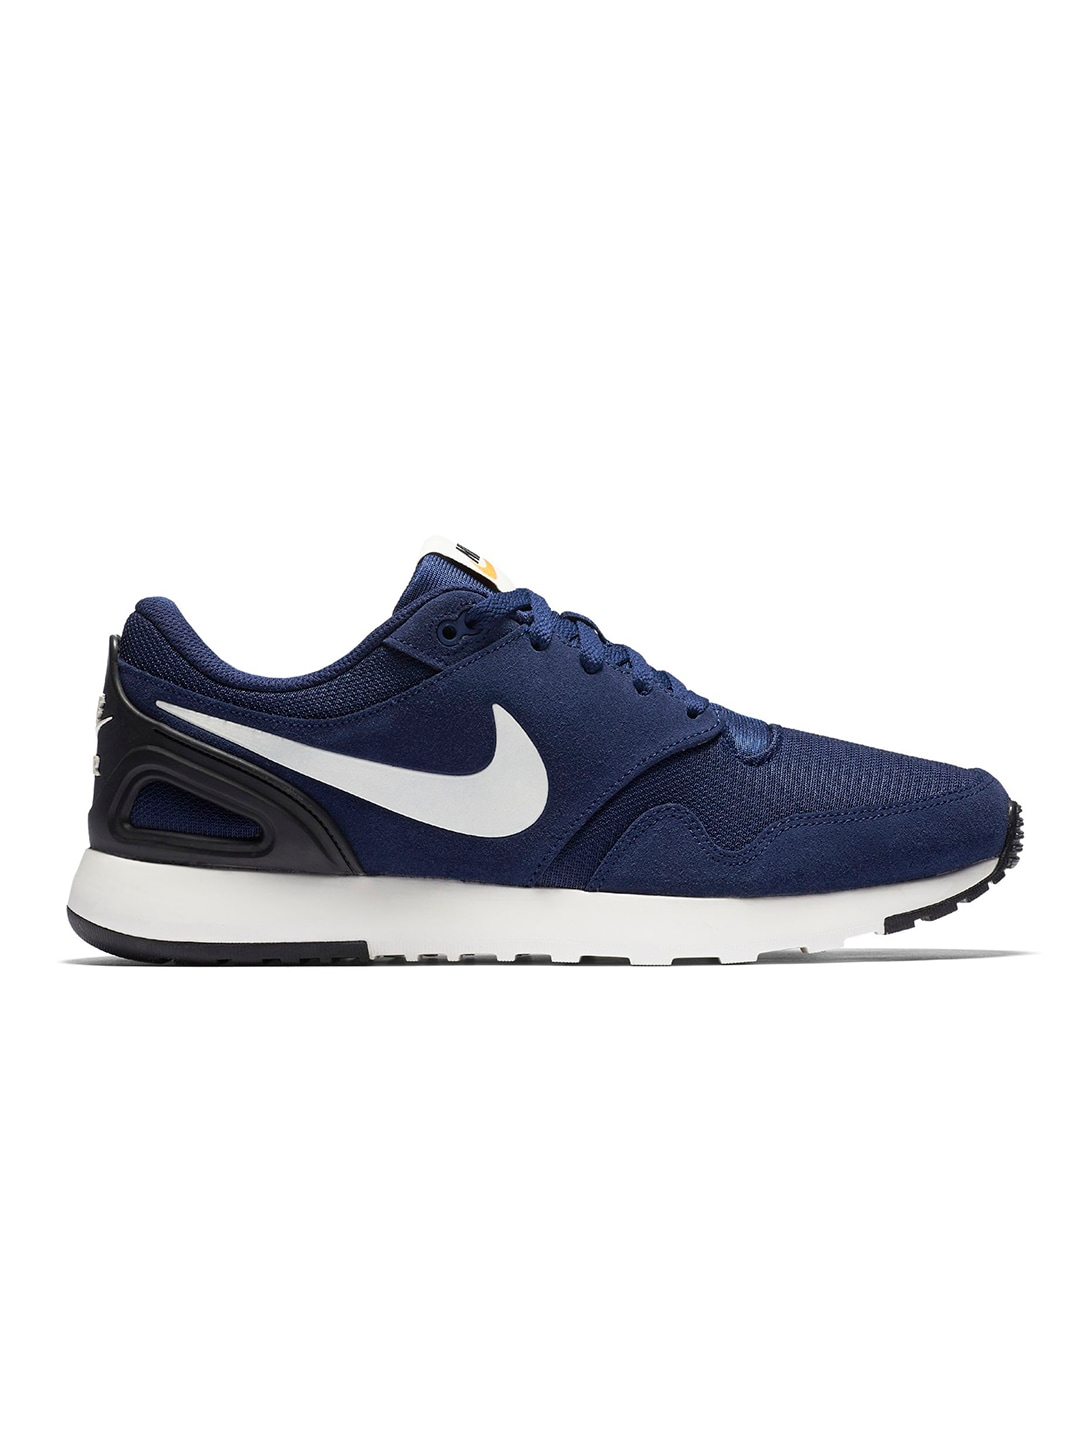 Nike Shoes Sale Online Cheap India